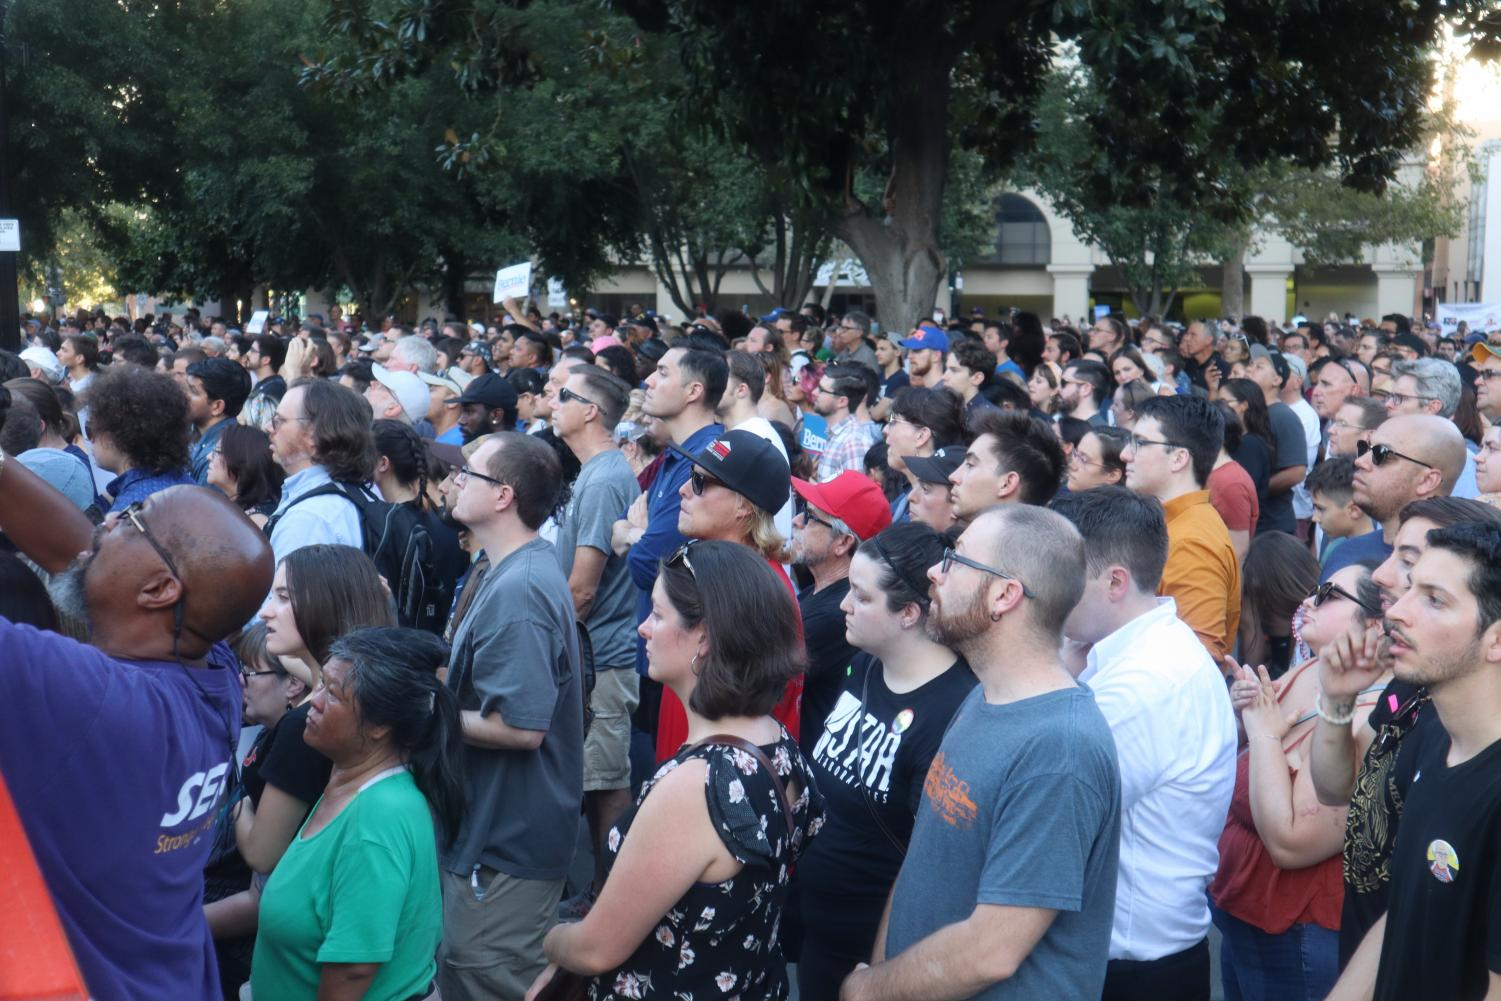 Rally+goers+listen+to+Bernie+Sanders+speak+at+Cesar+Chavez+Plaza+on+Thursday%2C+Aug.+22%2C+2019.+Sanders+referenced+last+year%27s+Camp+Fire+while+speaking+on+the+effects+of+climate+change+and+the+need+to+reverse+them.